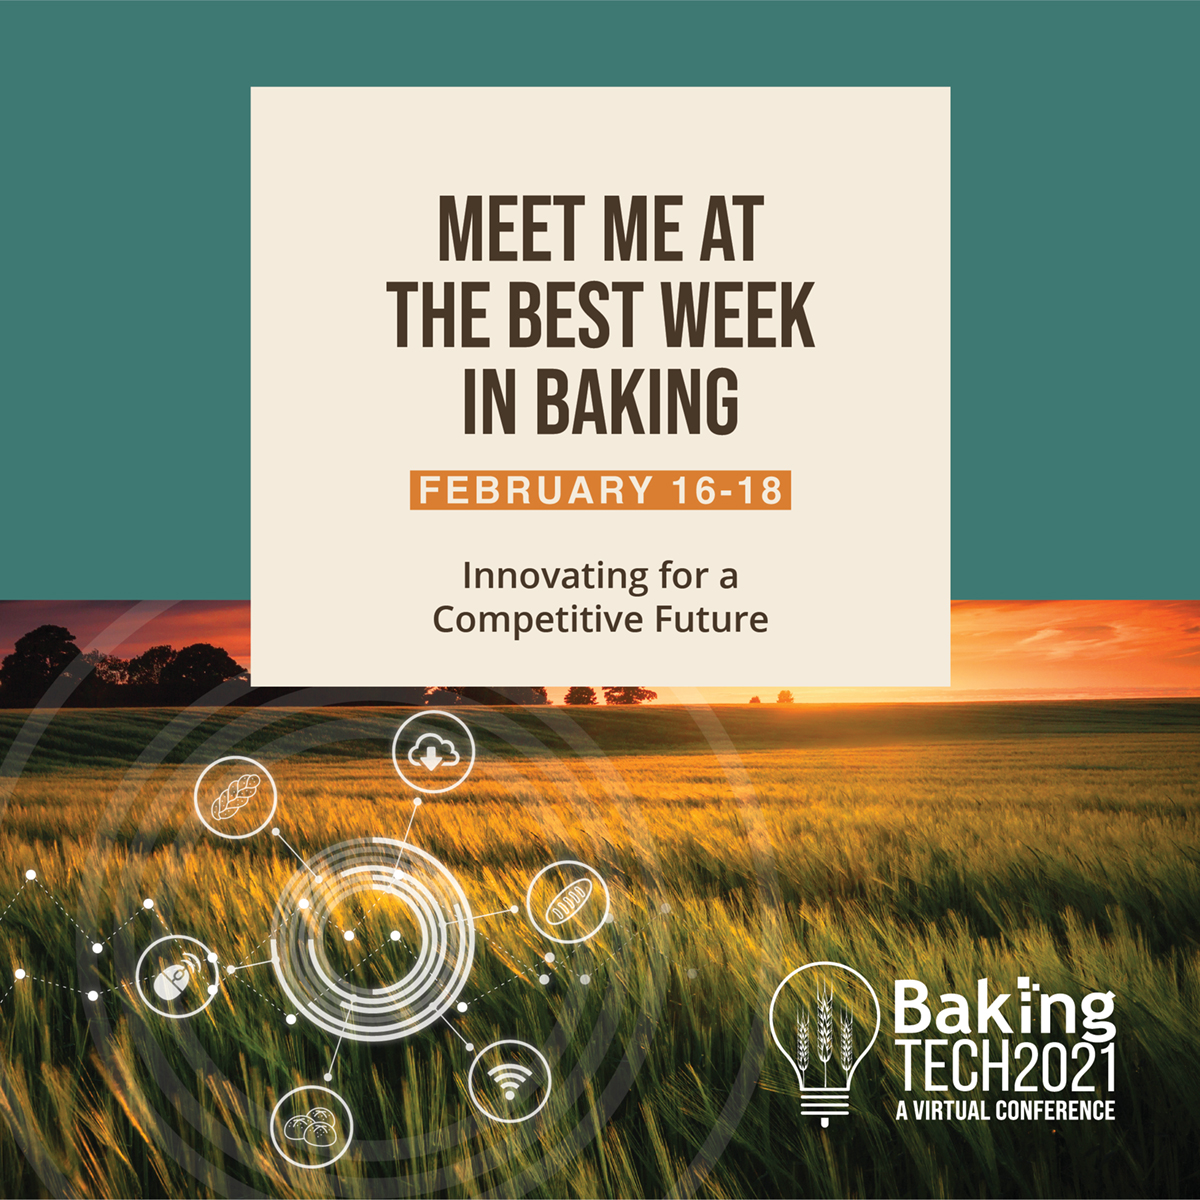 Baking Tech 2021 Conference Flier